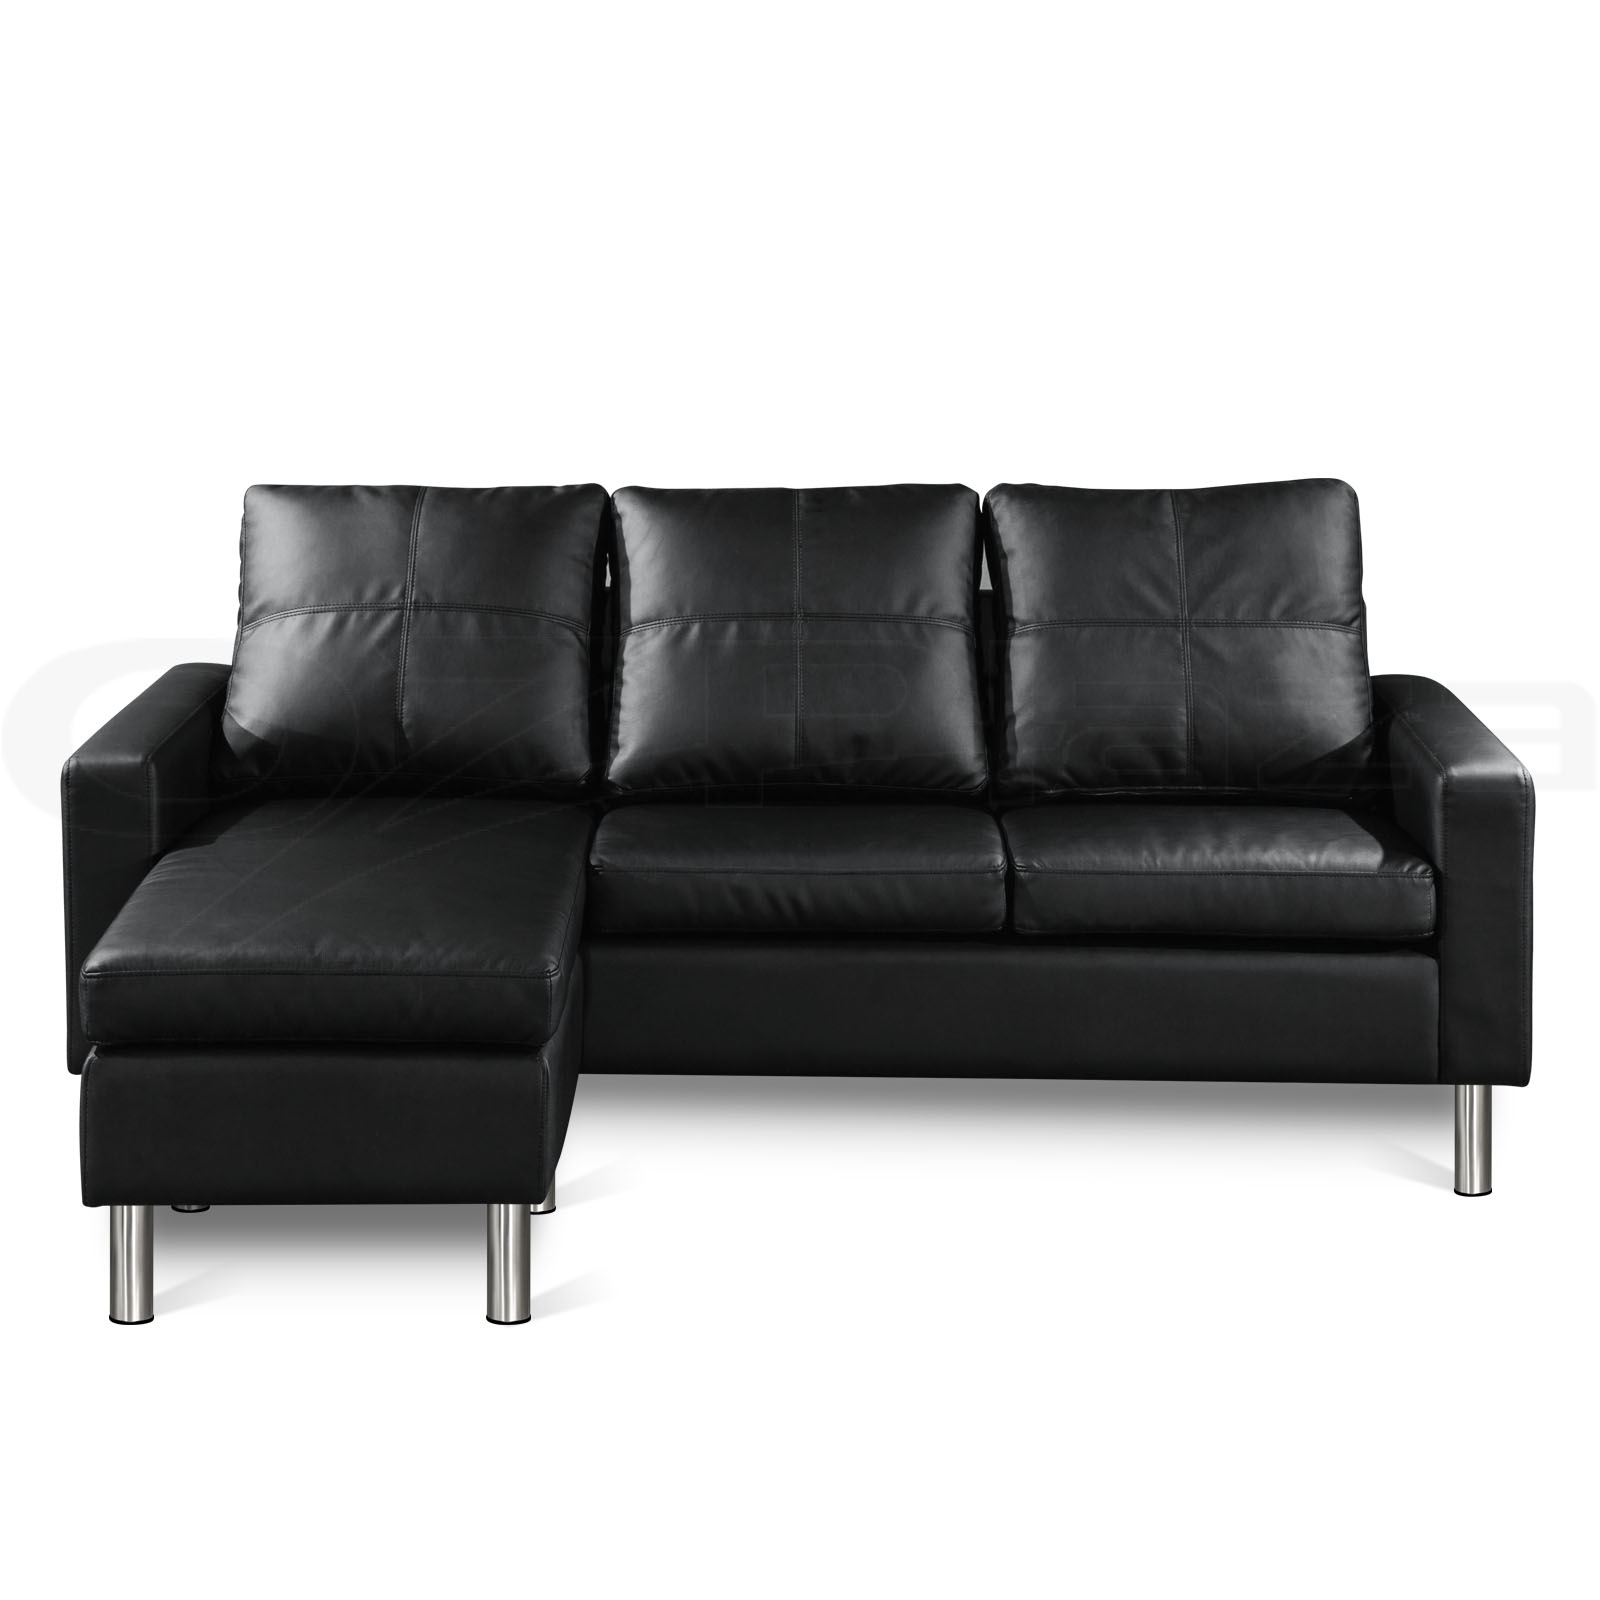 Pu leather sofa modular lounge suite chaise double futon for Black leather sofa chaise lounge